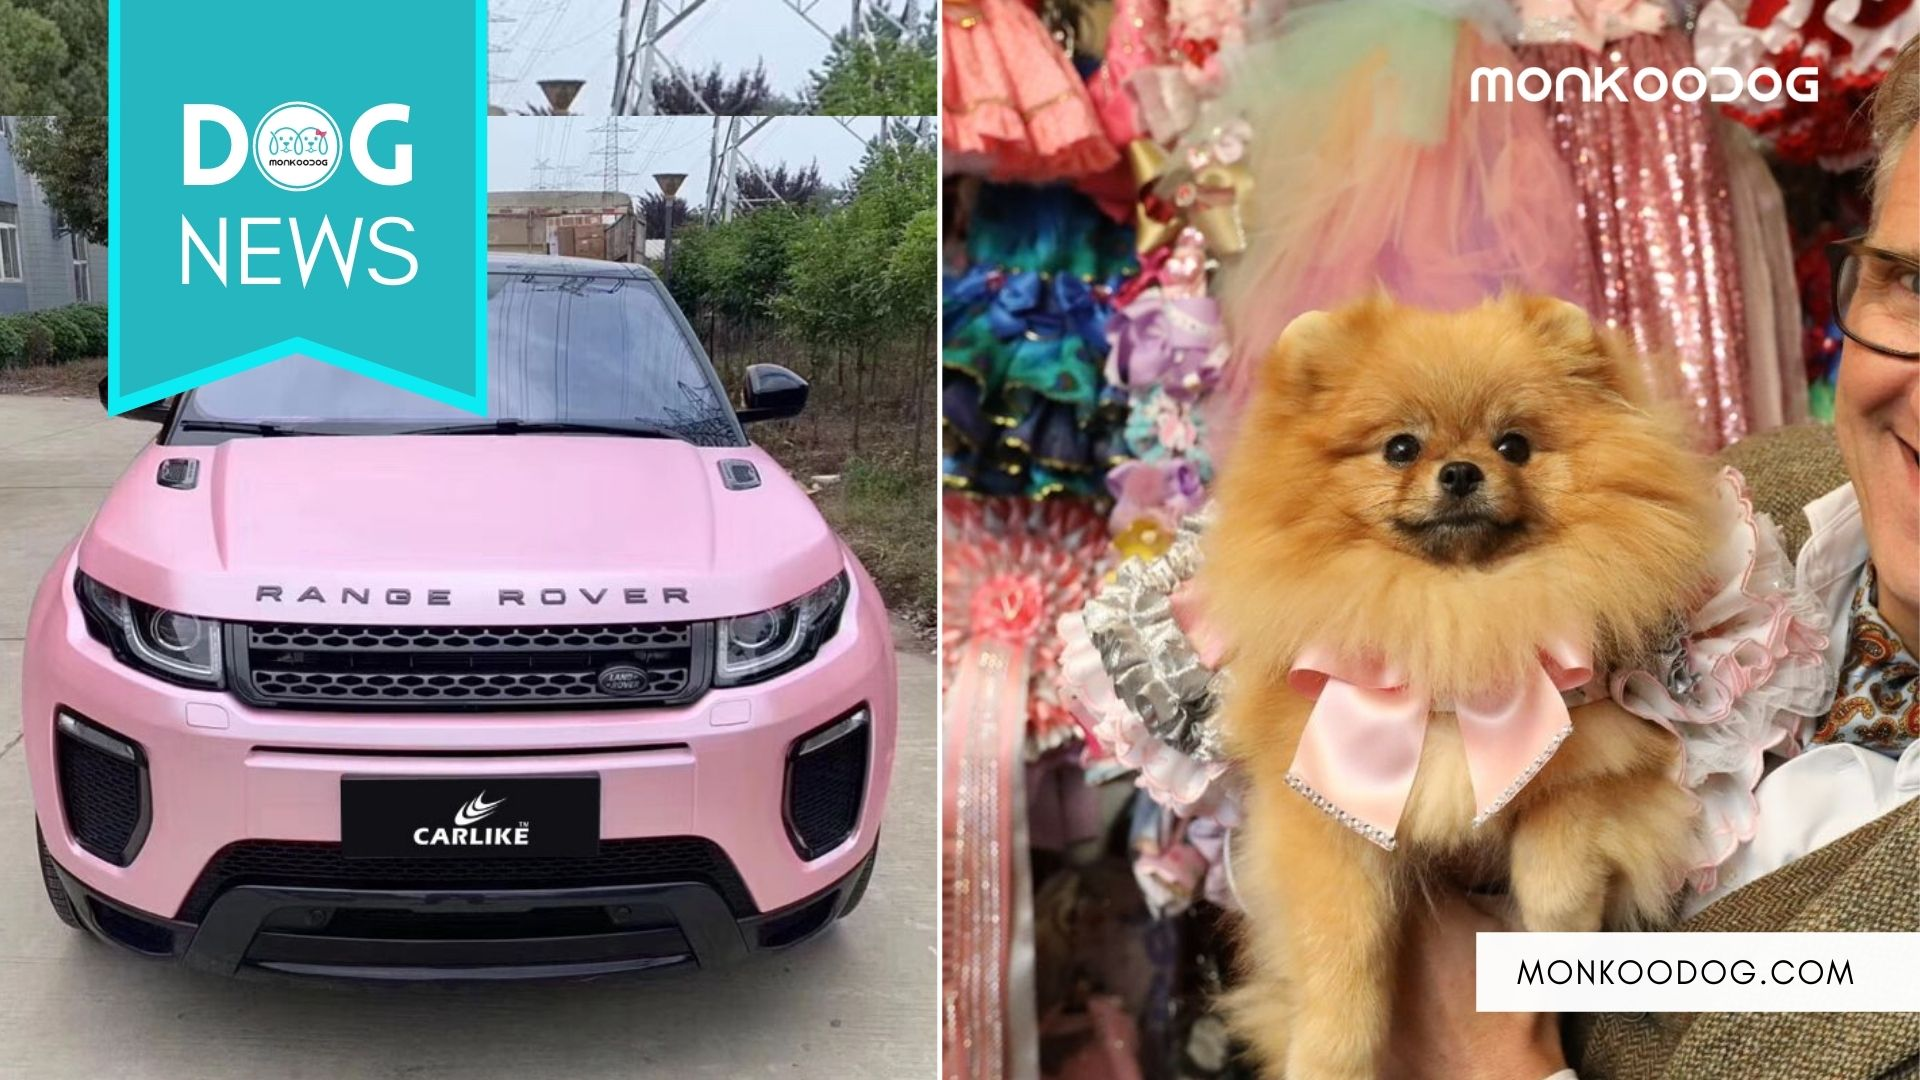 Meet The World's Most Pampered Pomeranian - Tallulah Who Owns A Pink Range Rover. (1)